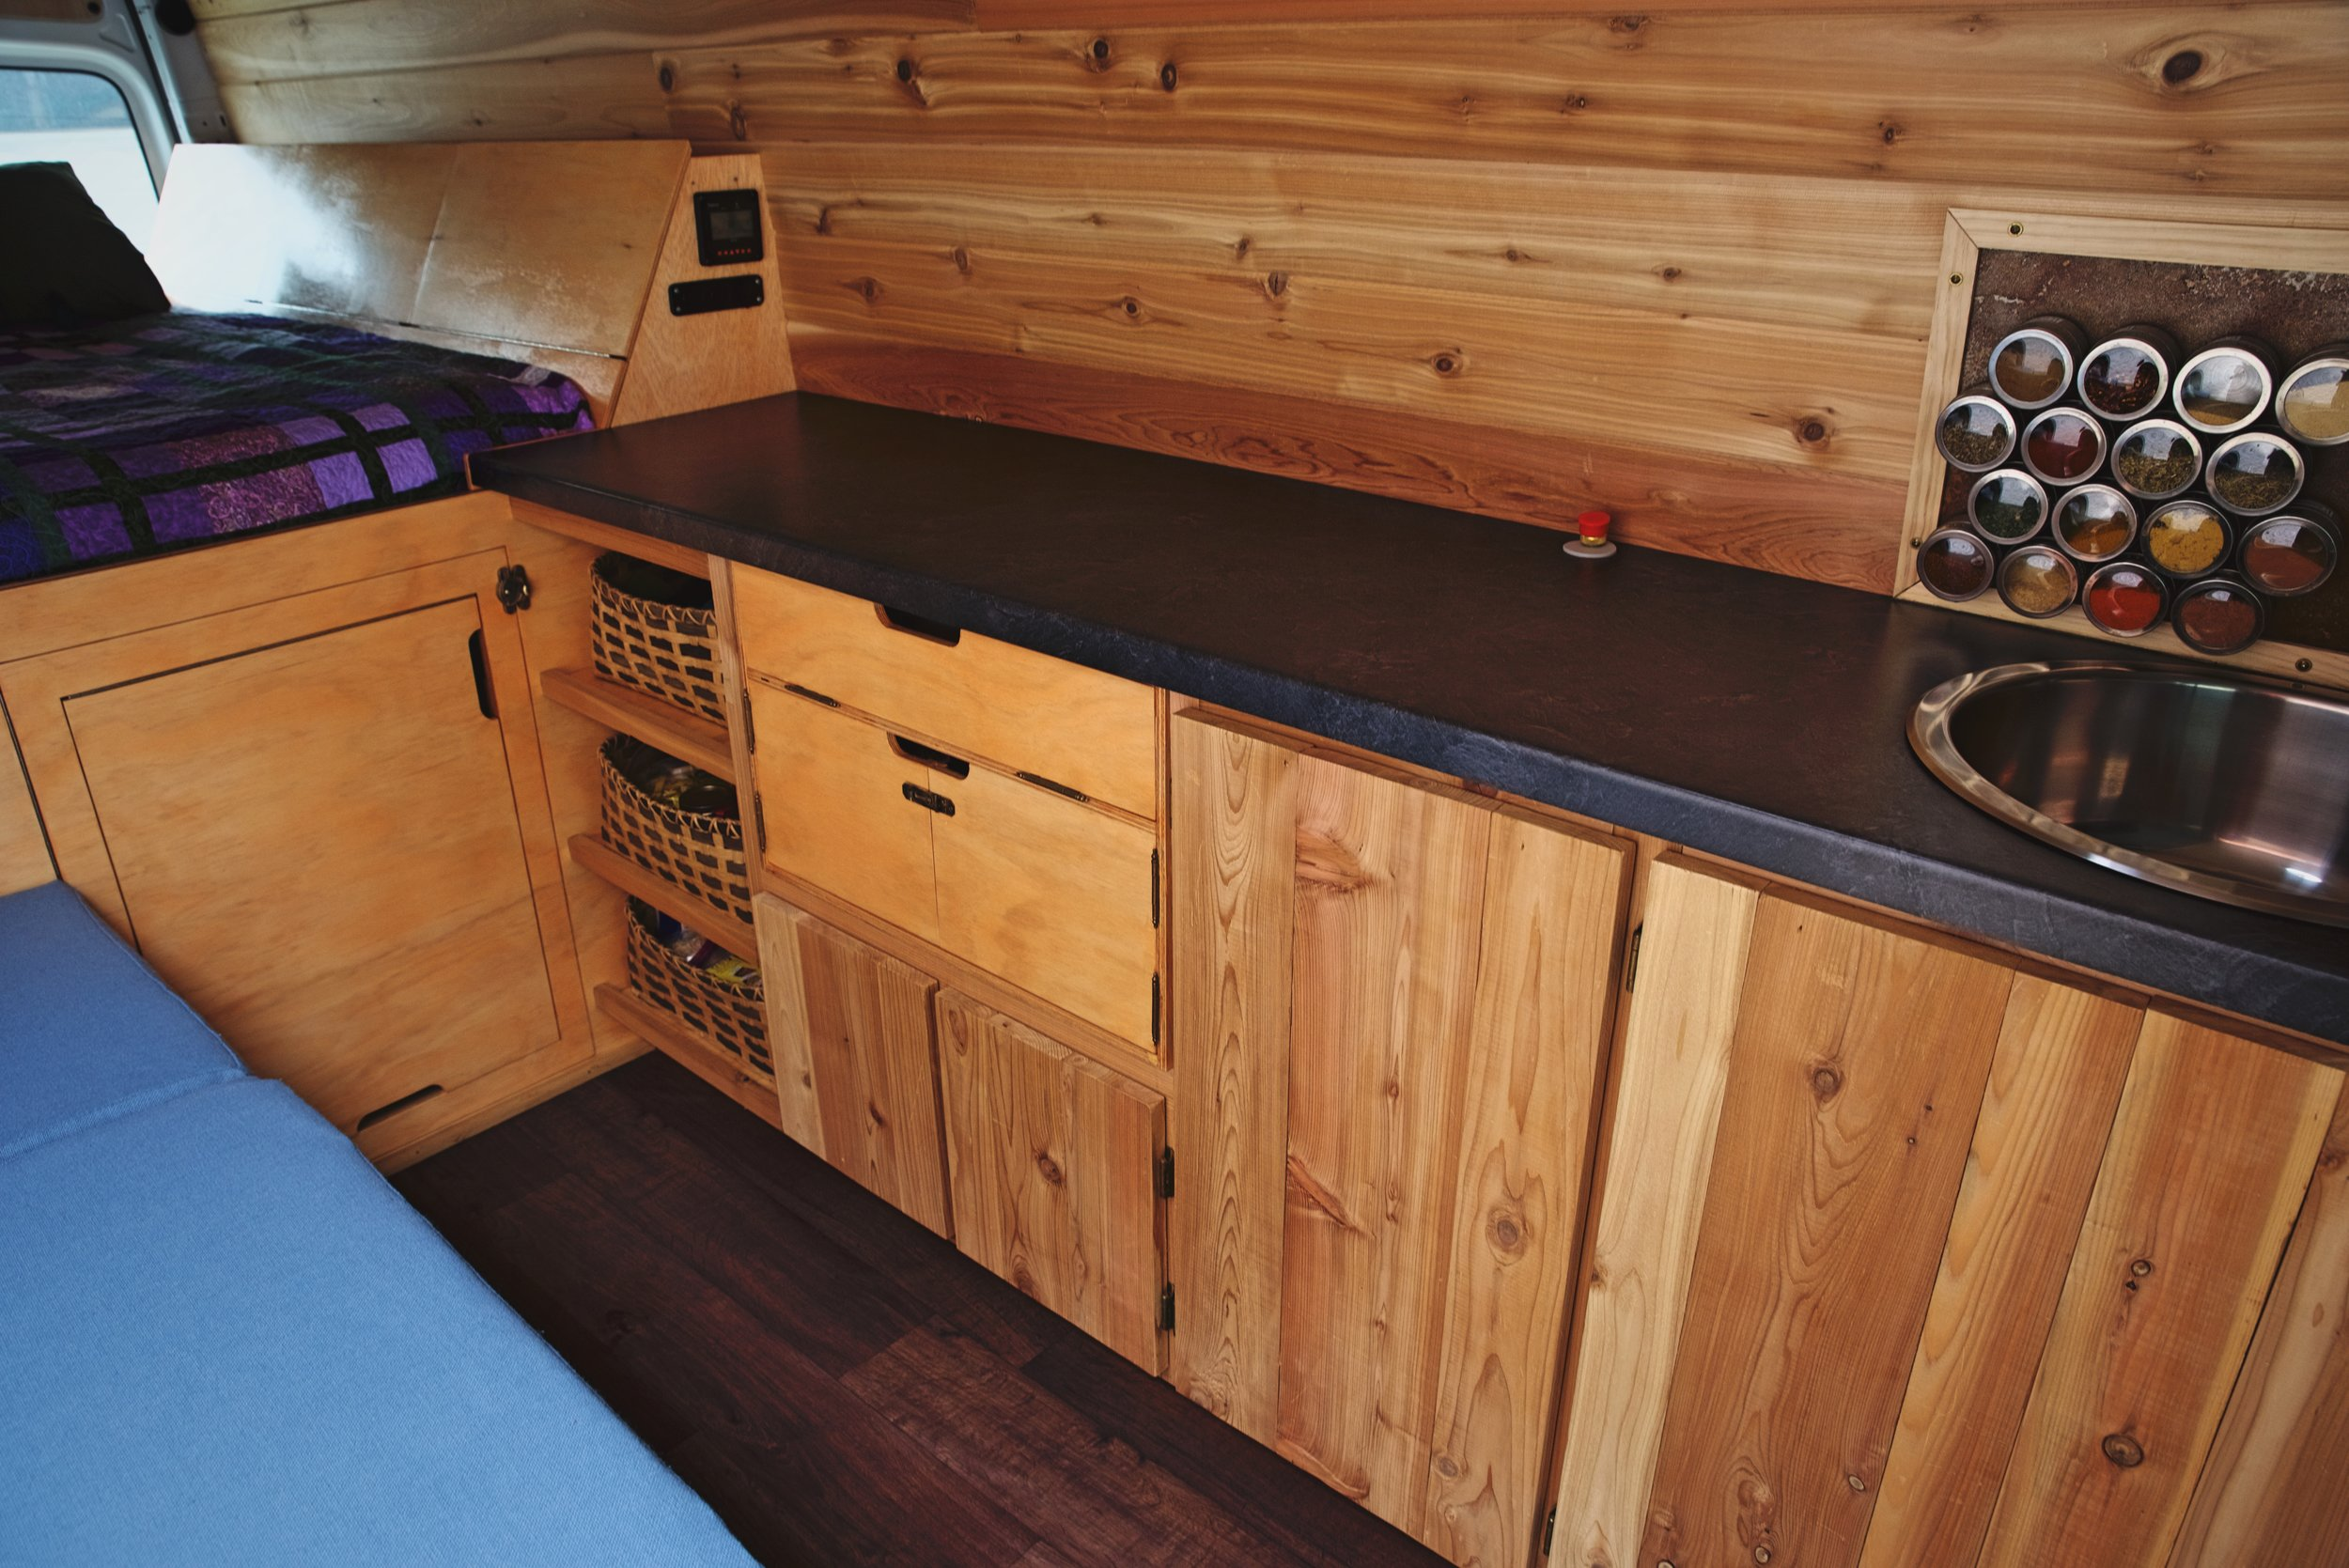 Building our cabinets was one the more complex elements of woodworking in our van. We built and designed the cabinets with the items we would be storing in mind.